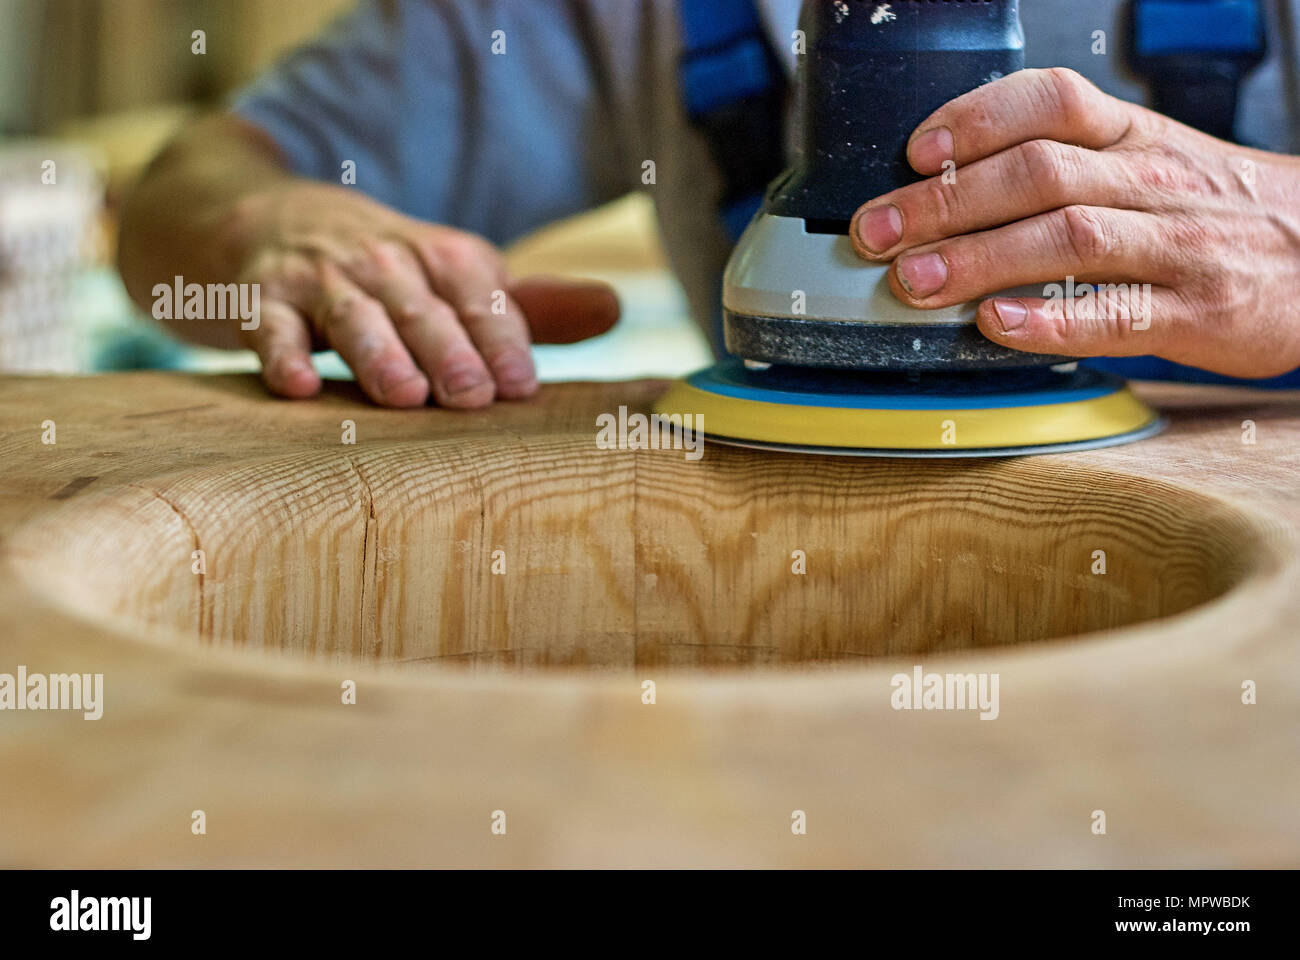 Woodworker is laboring carefully with professional equipment - Stock Image